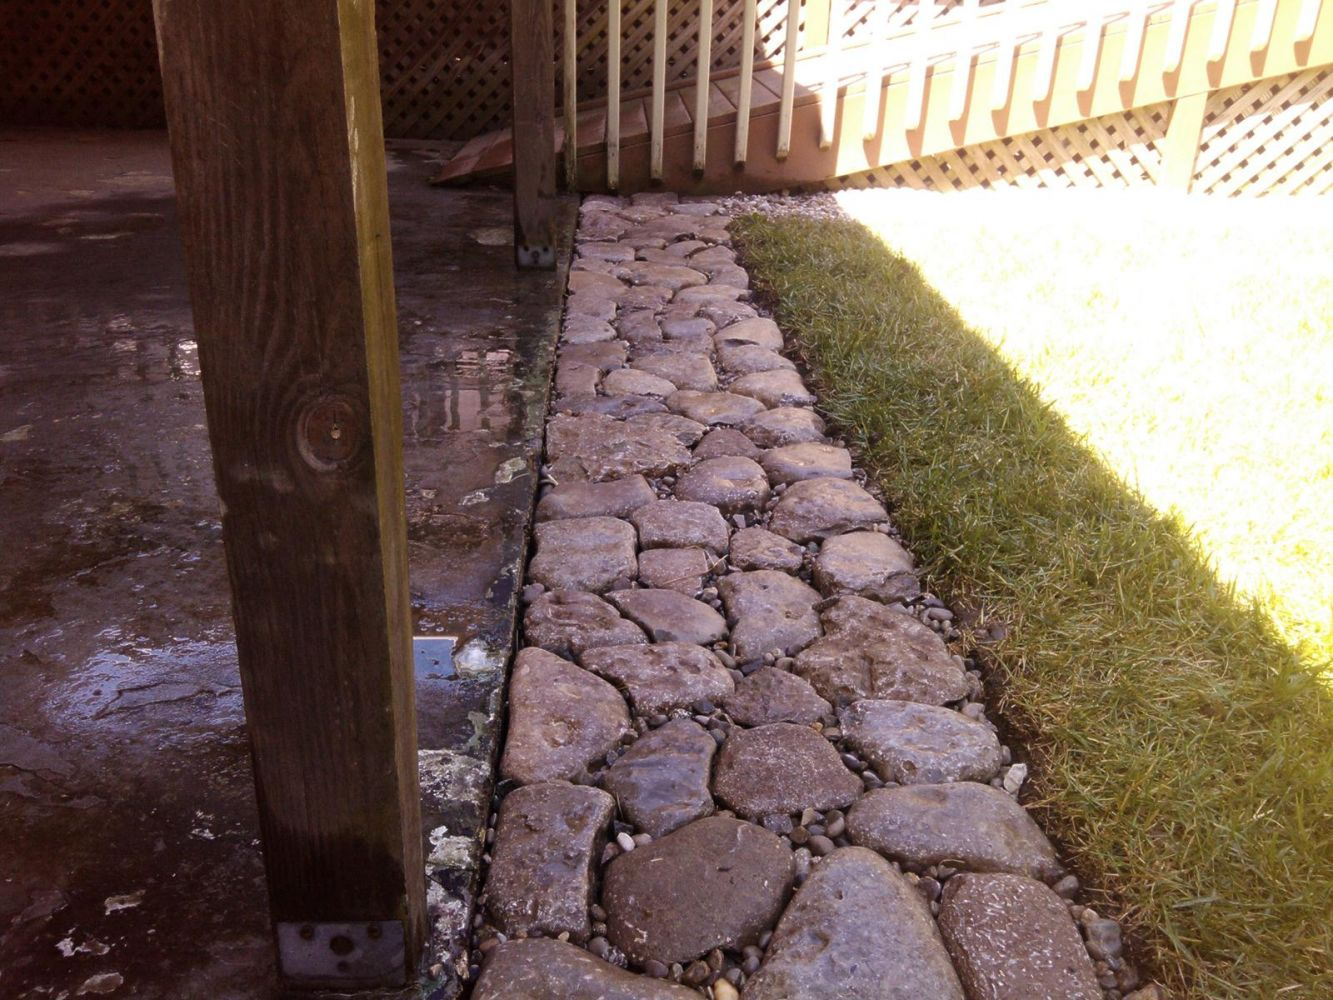 Drainage systems in Independence, KY